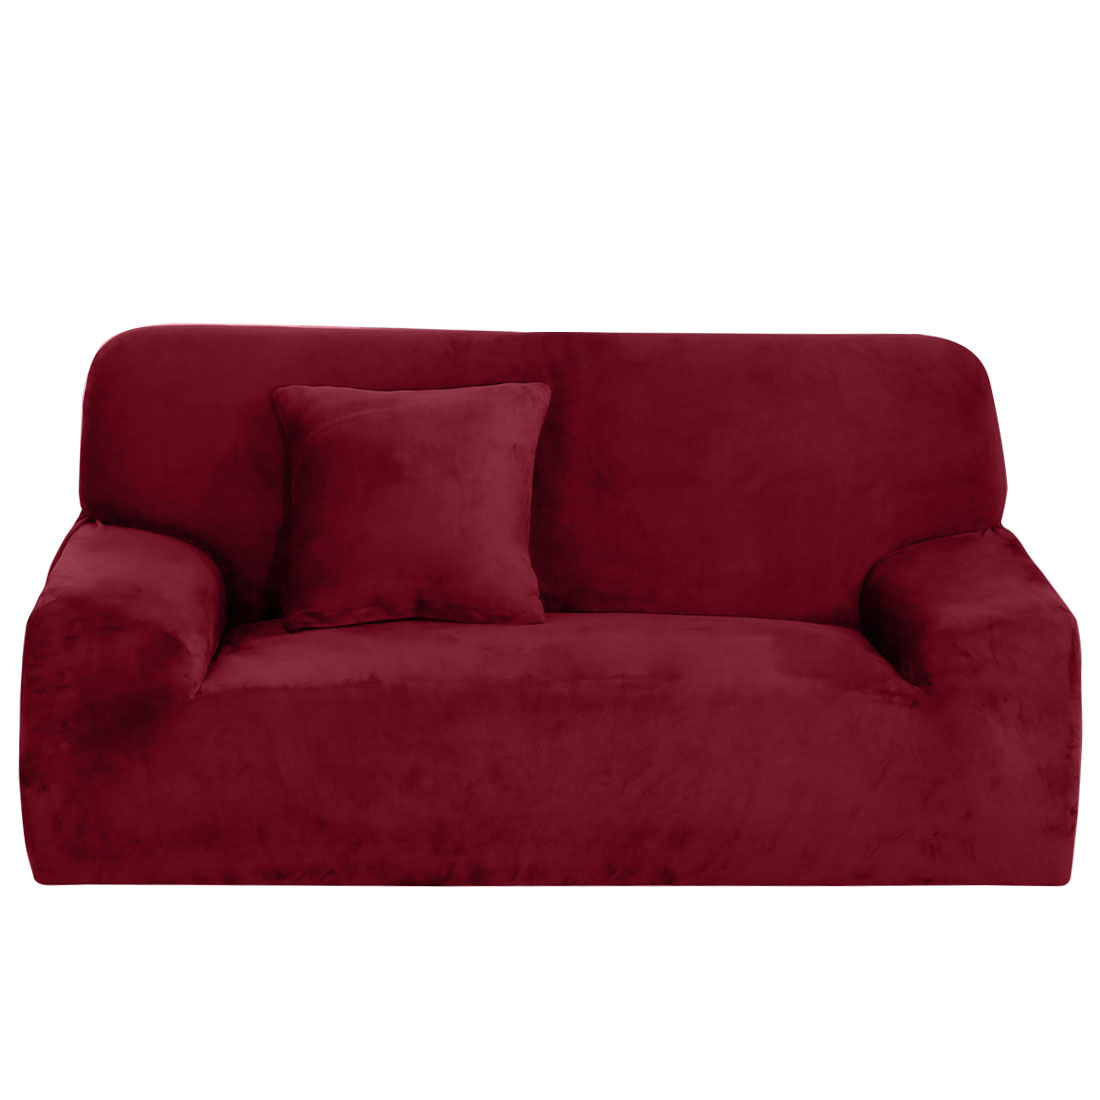 sofa cover cloth rate leather covers walmart canada flannel stretch fabric slipcovers for loveseat